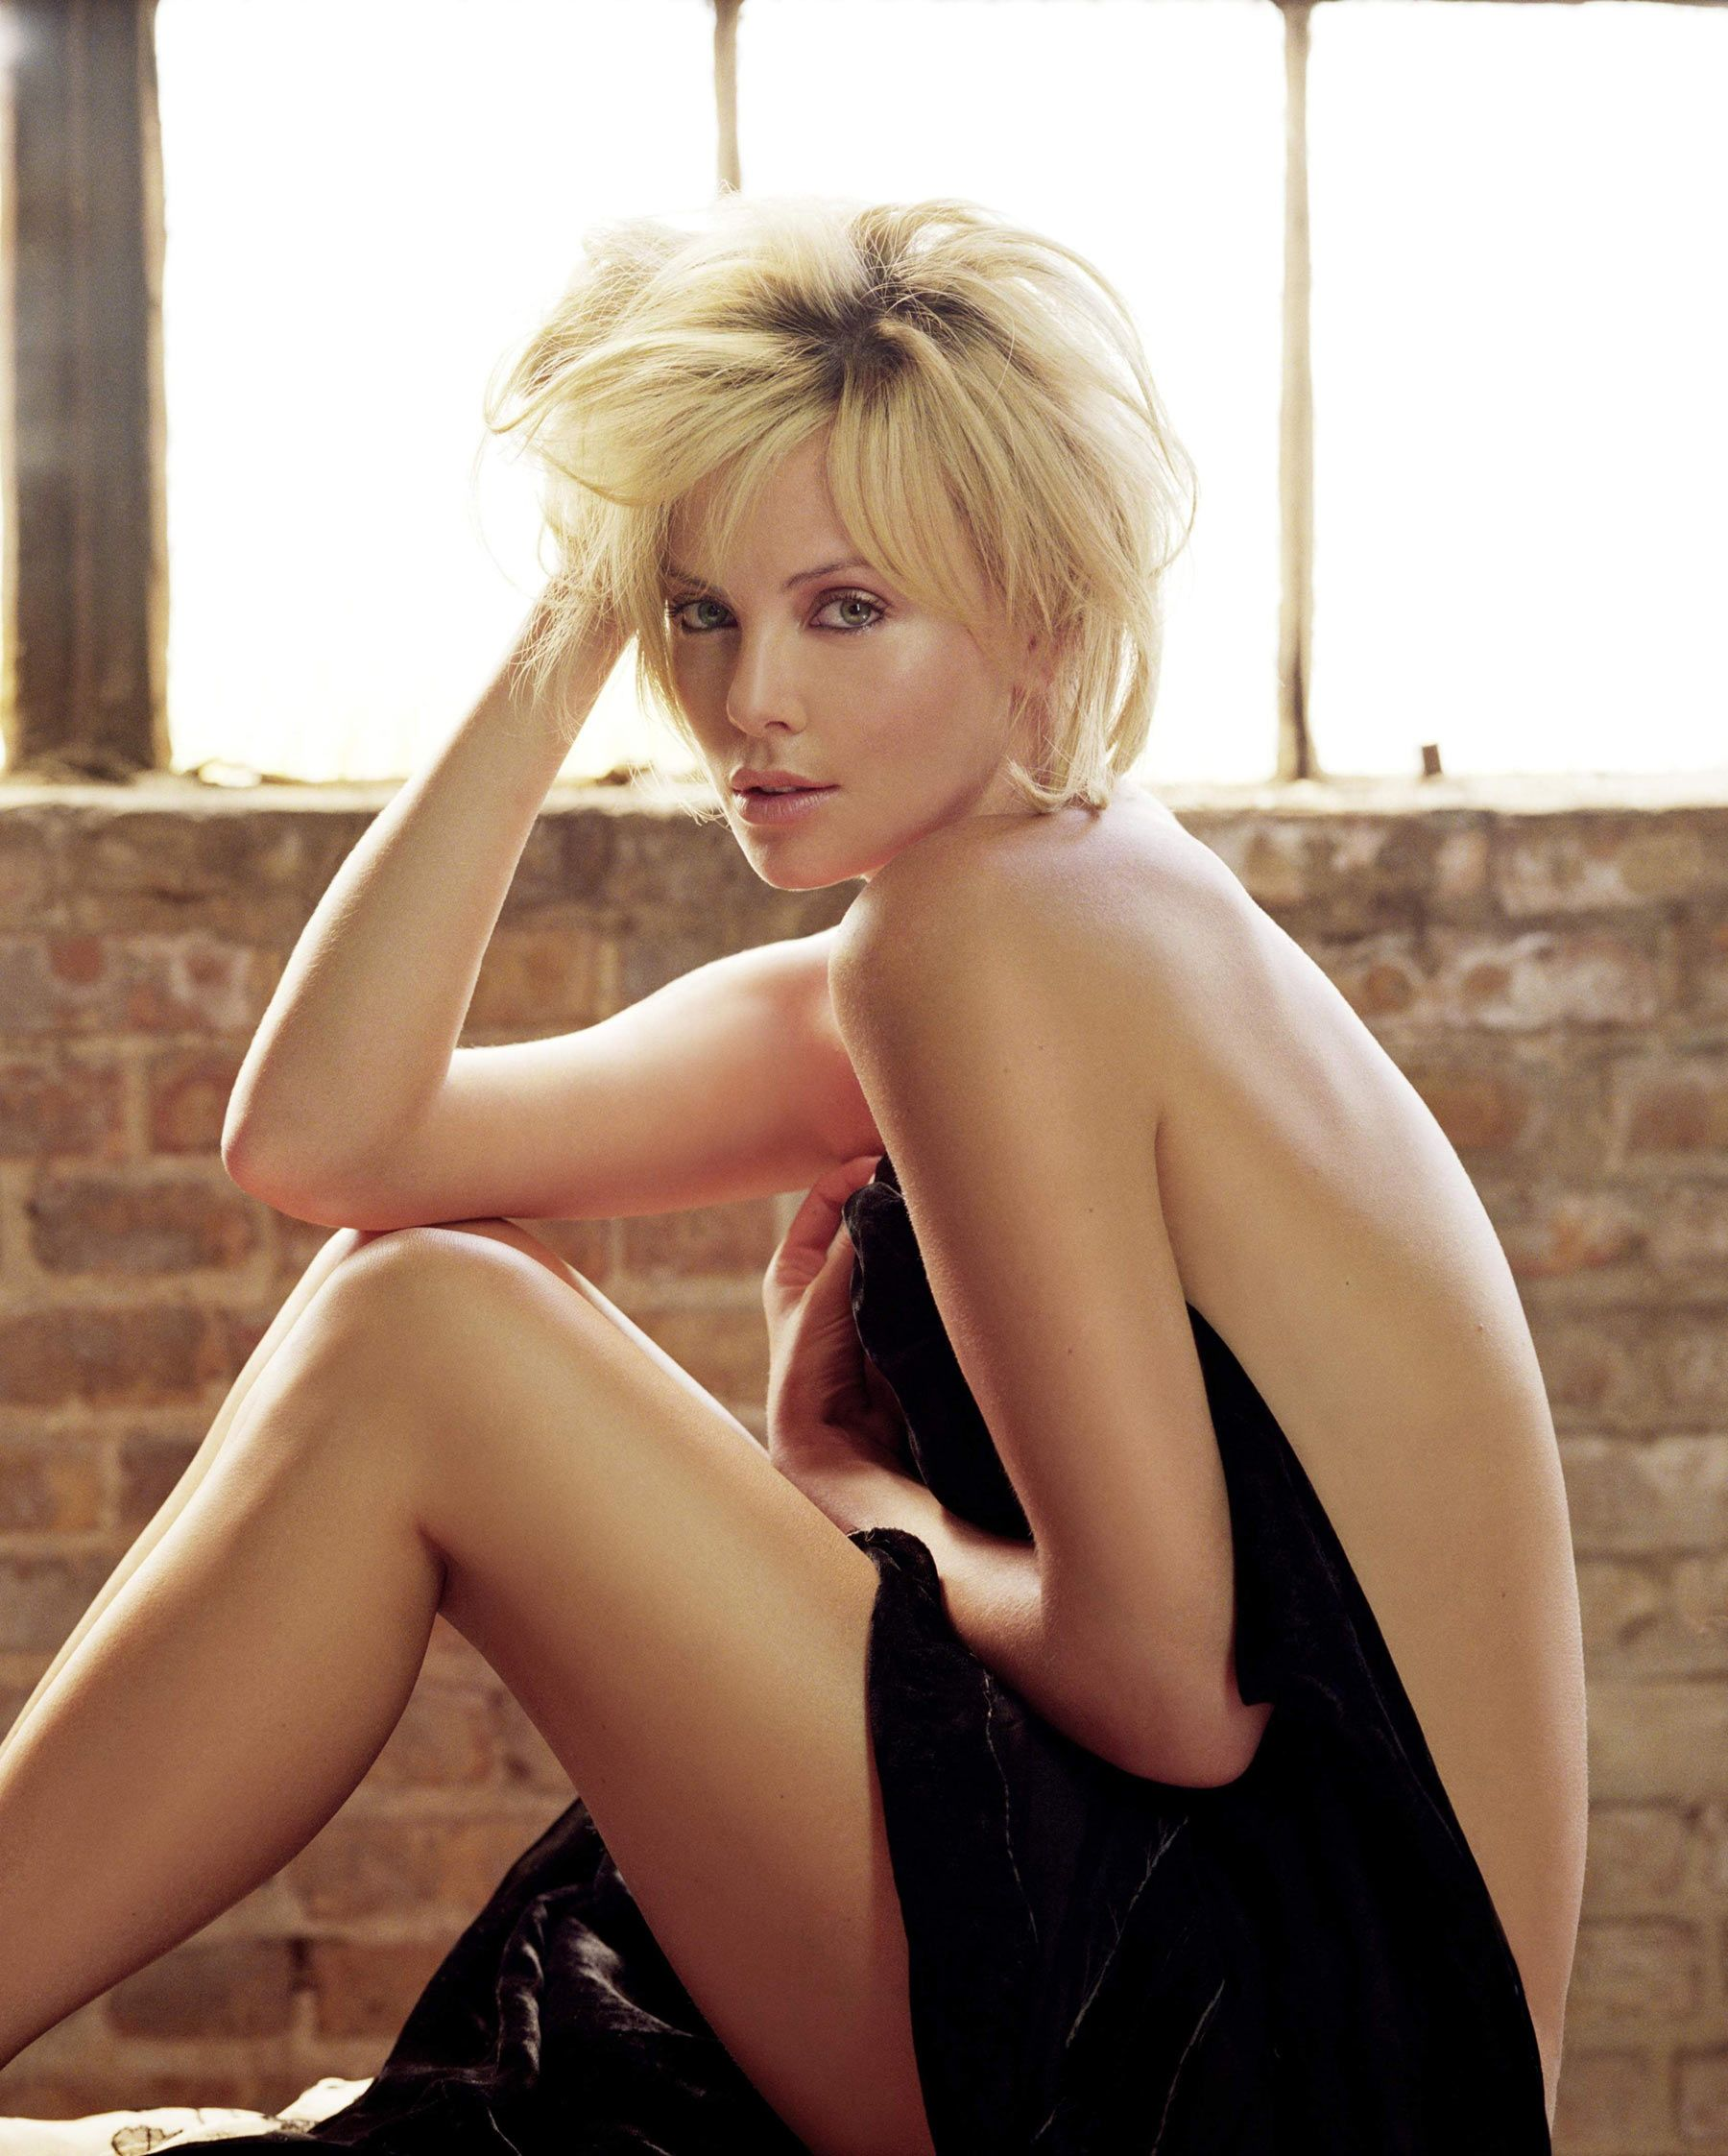 Naked photos of charlize theron